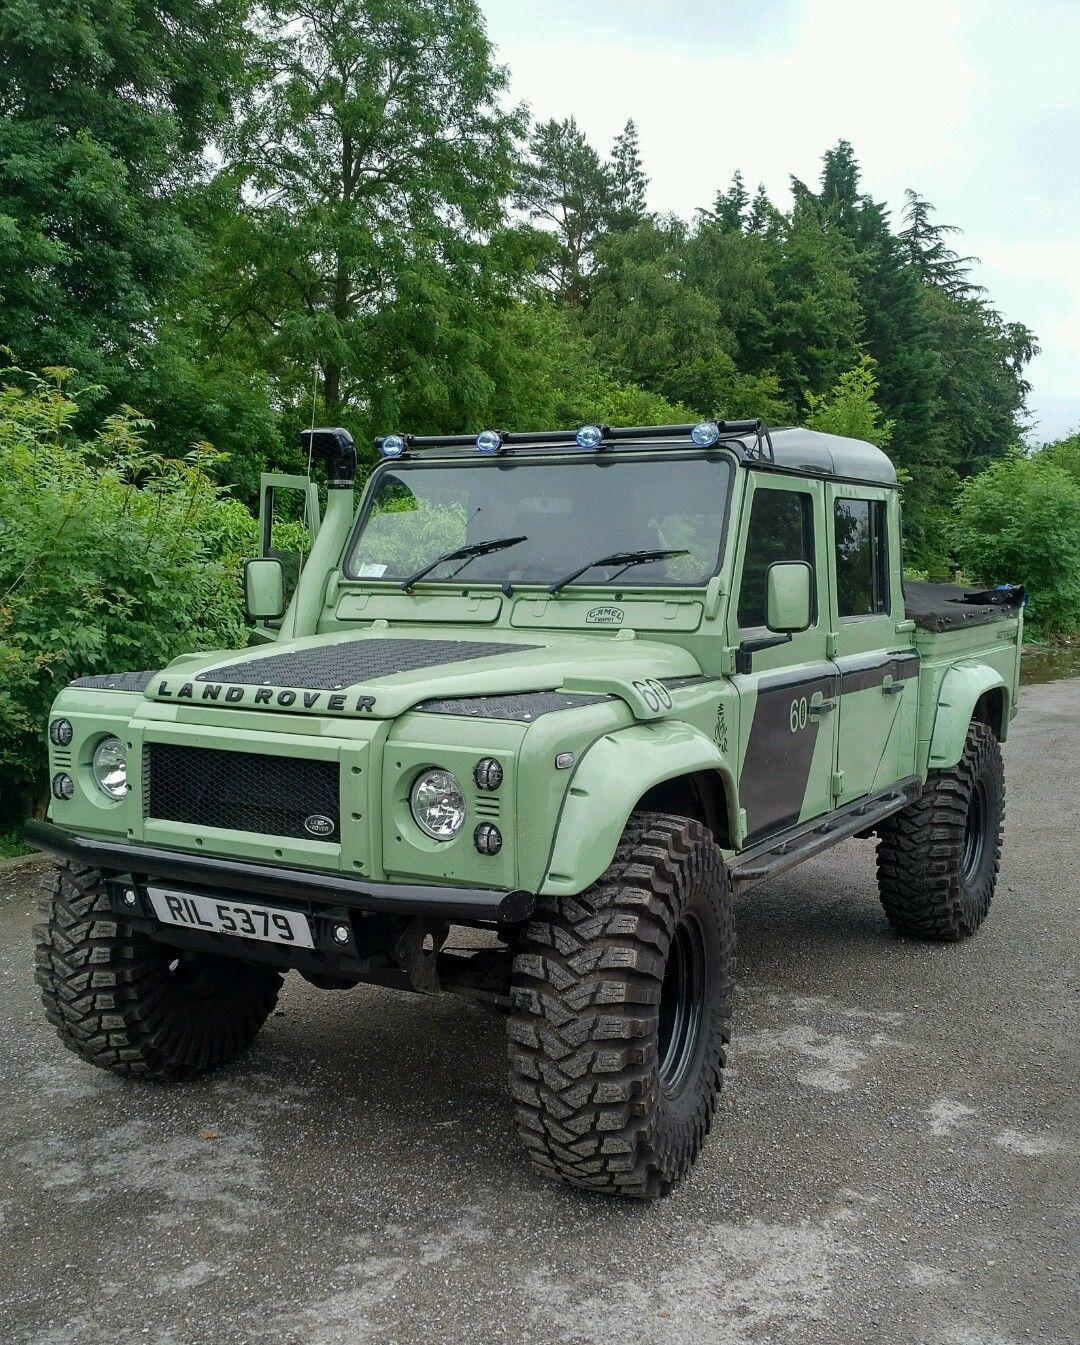 land rover defender td5 double cab 130 110 pick up in cars motorcycles vehicles cars land. Black Bedroom Furniture Sets. Home Design Ideas